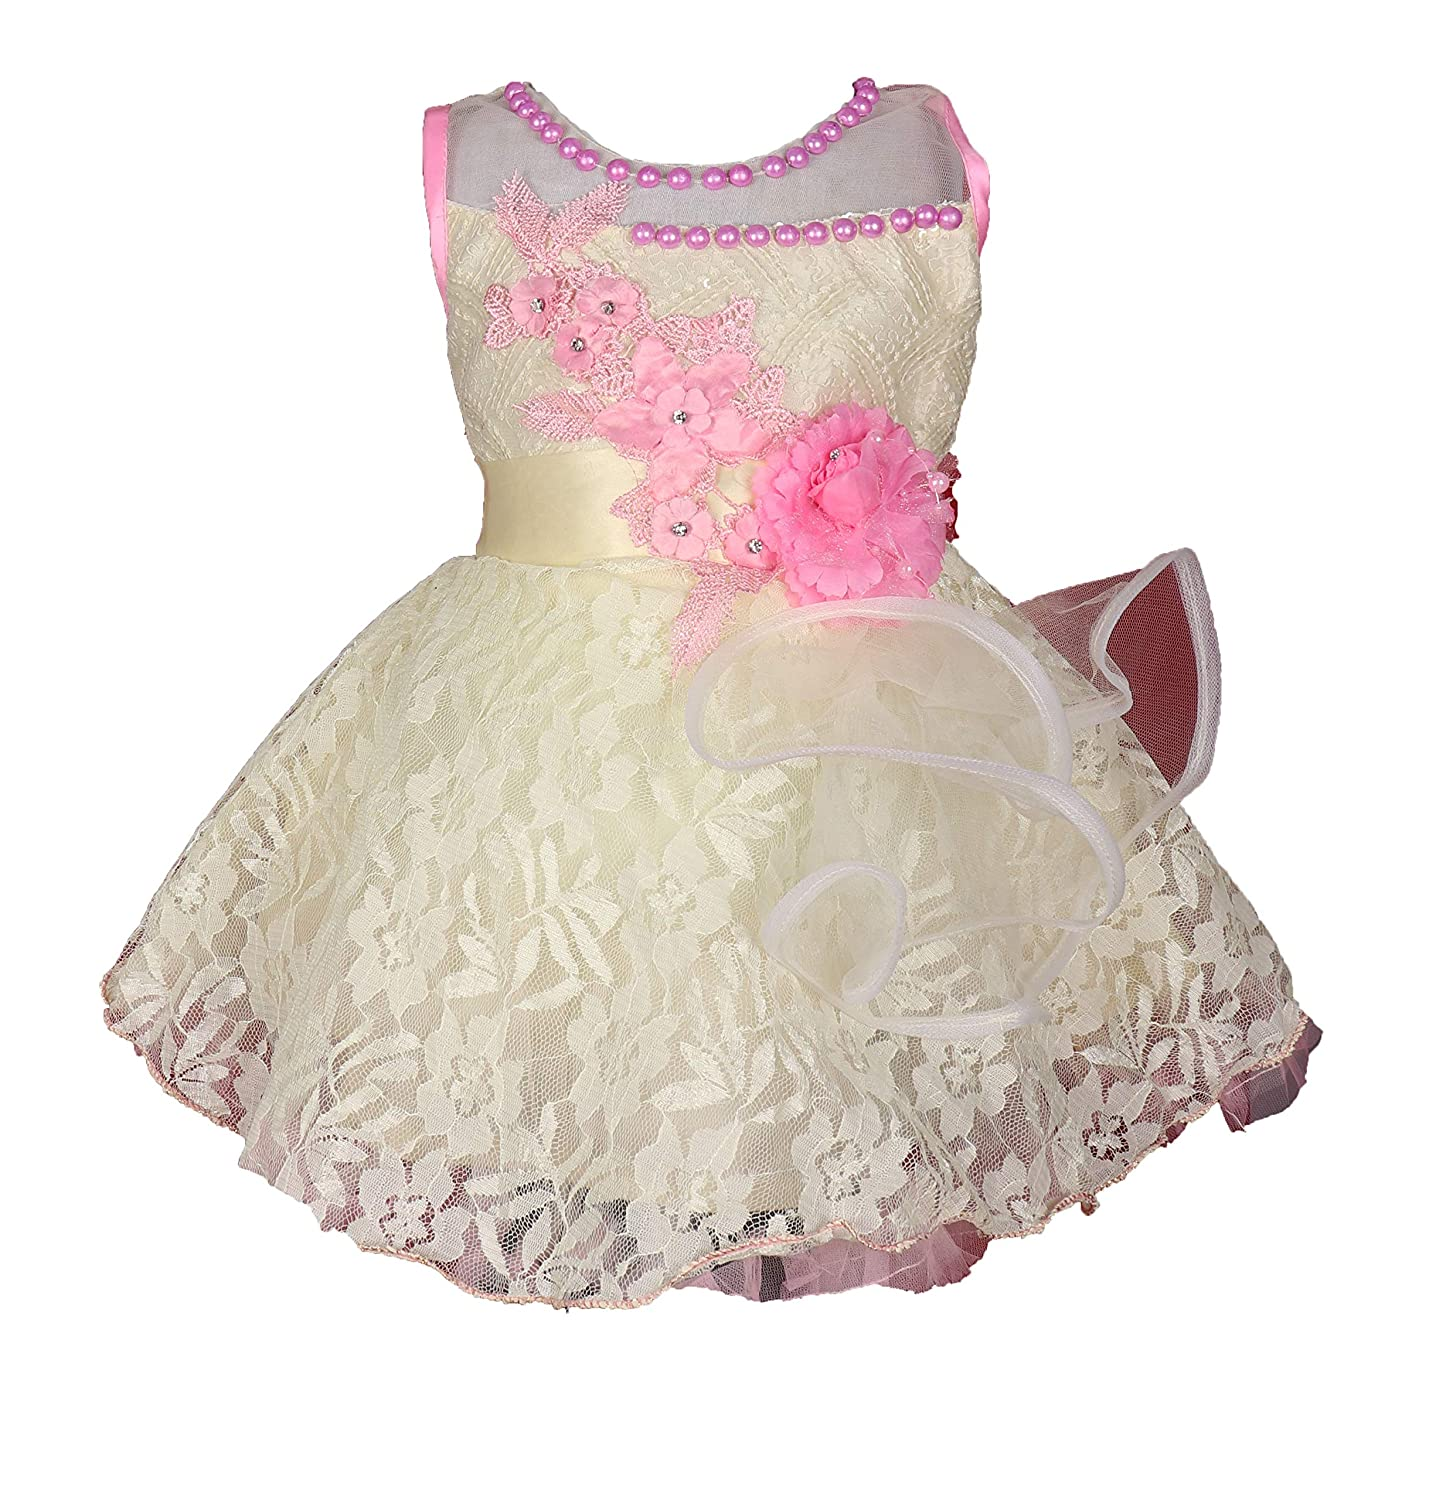 f89c92a160 Onam Dress For Baby Girl Online Shopping | Saddha